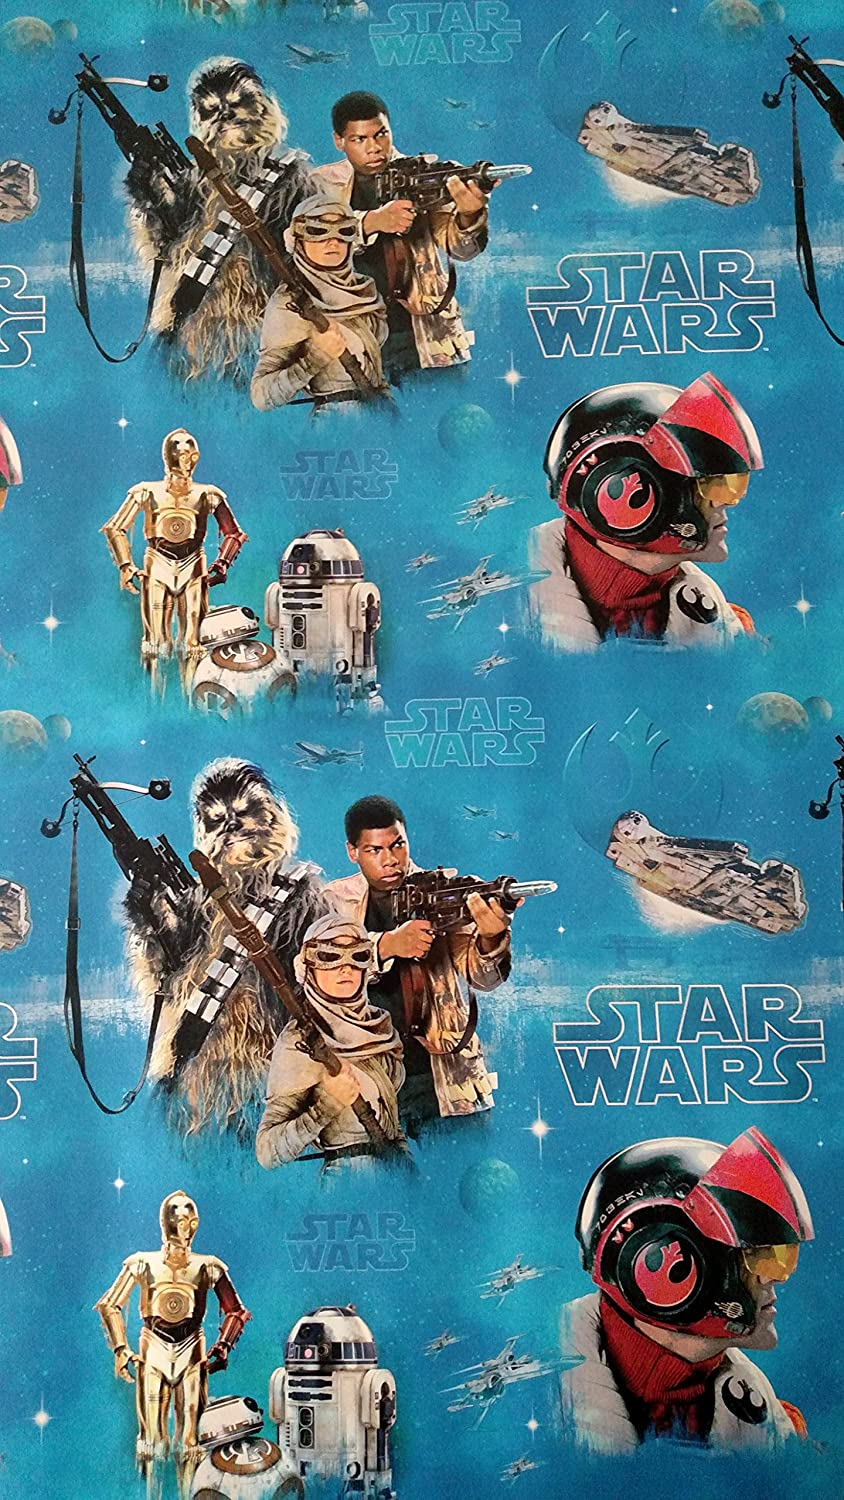 Amazon.com: Star Wars Wrapping Paper Movie Gift Wrap, 22.5 Sq Ft ...